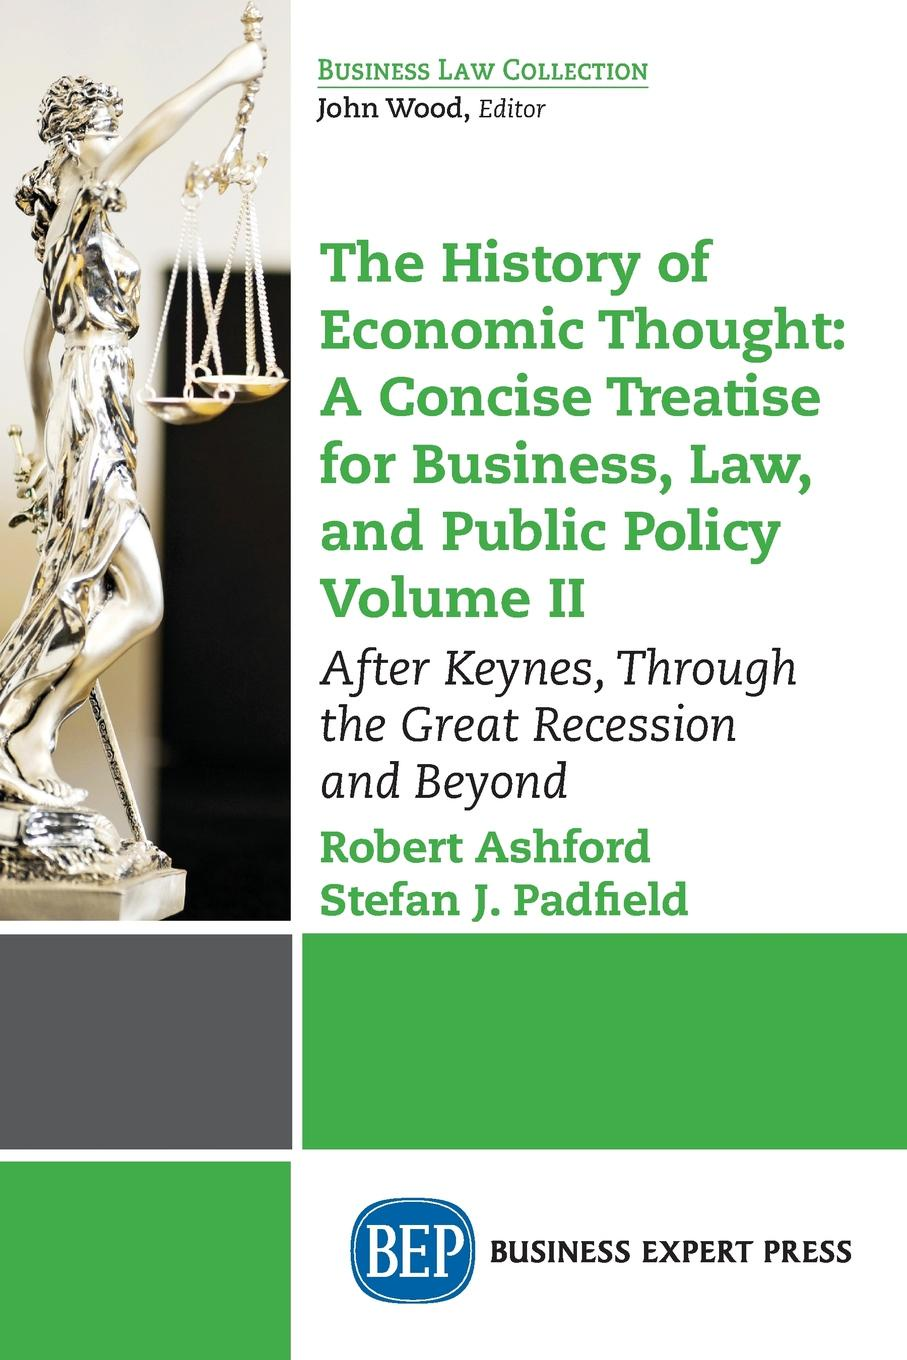 Robert Ashford, Stefan J. Padfield The History of Economic Thought. A Concise Treatise for Business, Law, and Public Policy Volume II: After Keynes, Through the Great Recession and Beyond